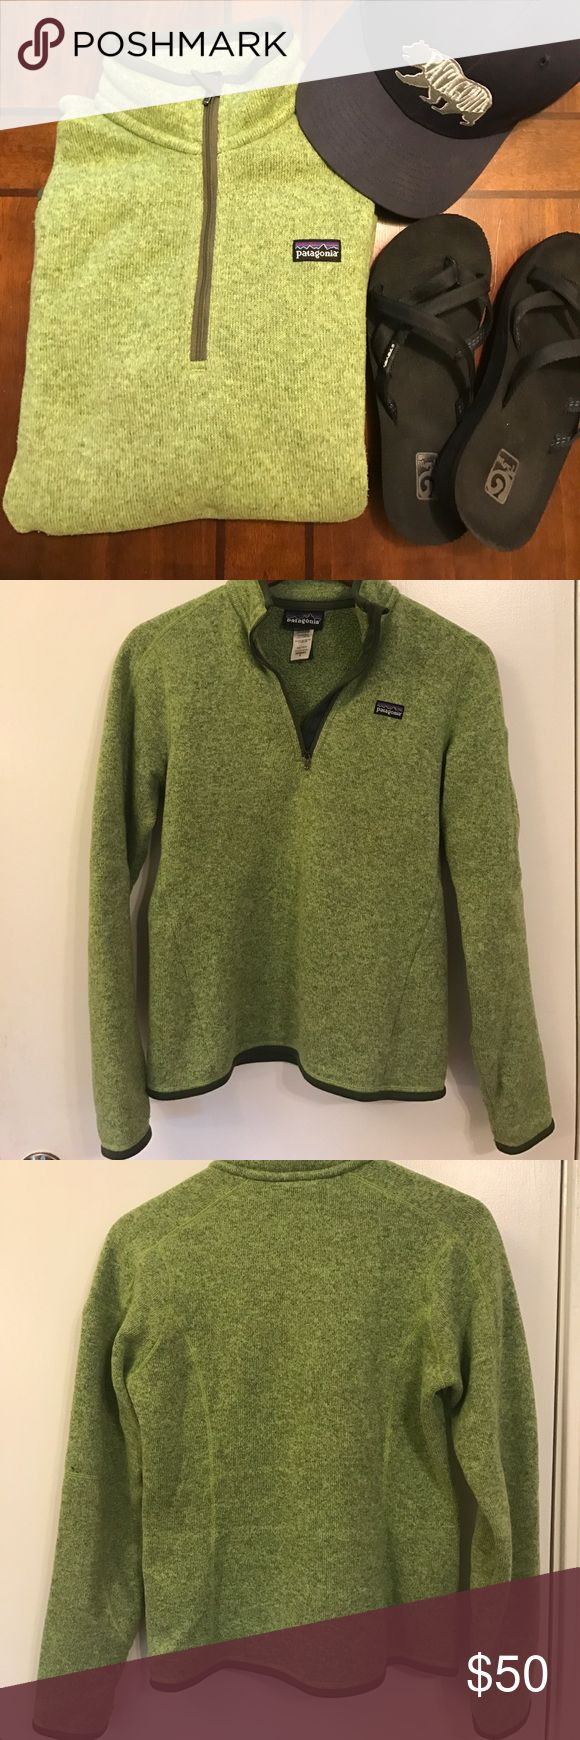 Selling this Patagonia Better Sweater 1/4 zip on Poshmark! My username is: meglalonde22. #shopmycloset #poshmark #fashion #shopping #style #forsale #Patagonia #Sweaters